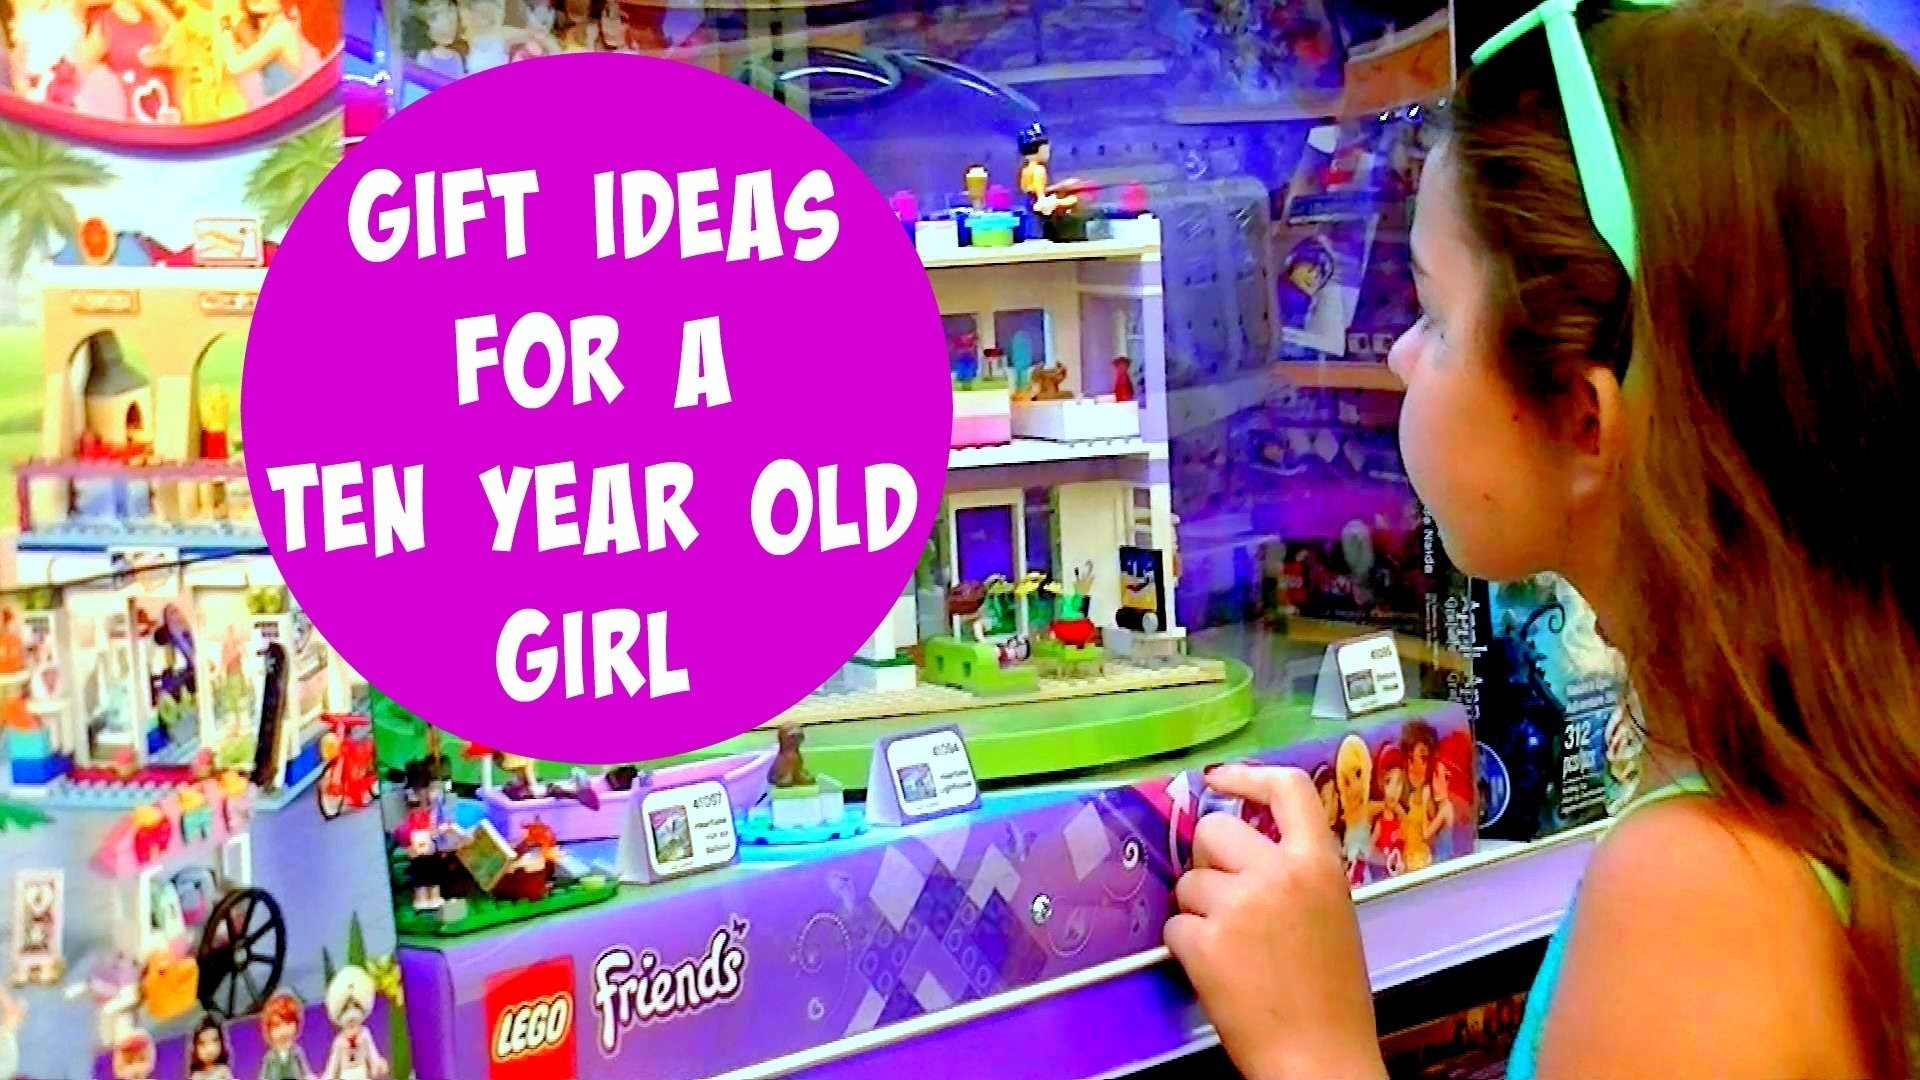 10 Nice 10 Year Old Birthday Ideas birthday gift ideas for a 10 year old girl under 30 youtube 3 2021